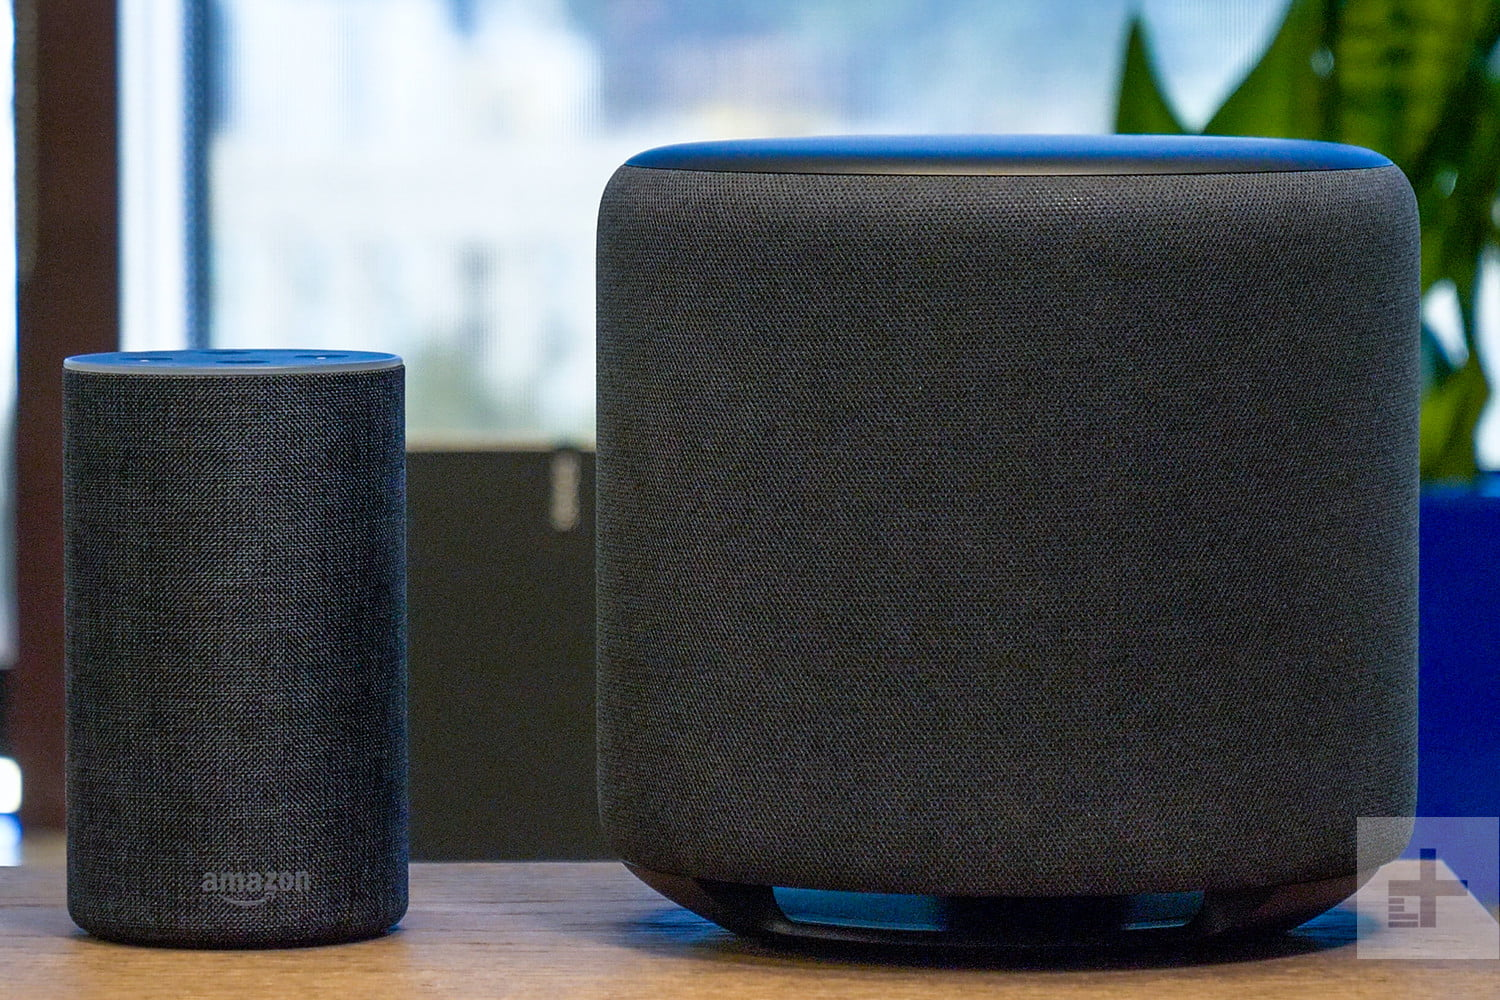 Amazon Fire TV update turns Echo devices into wireless home theater speakers